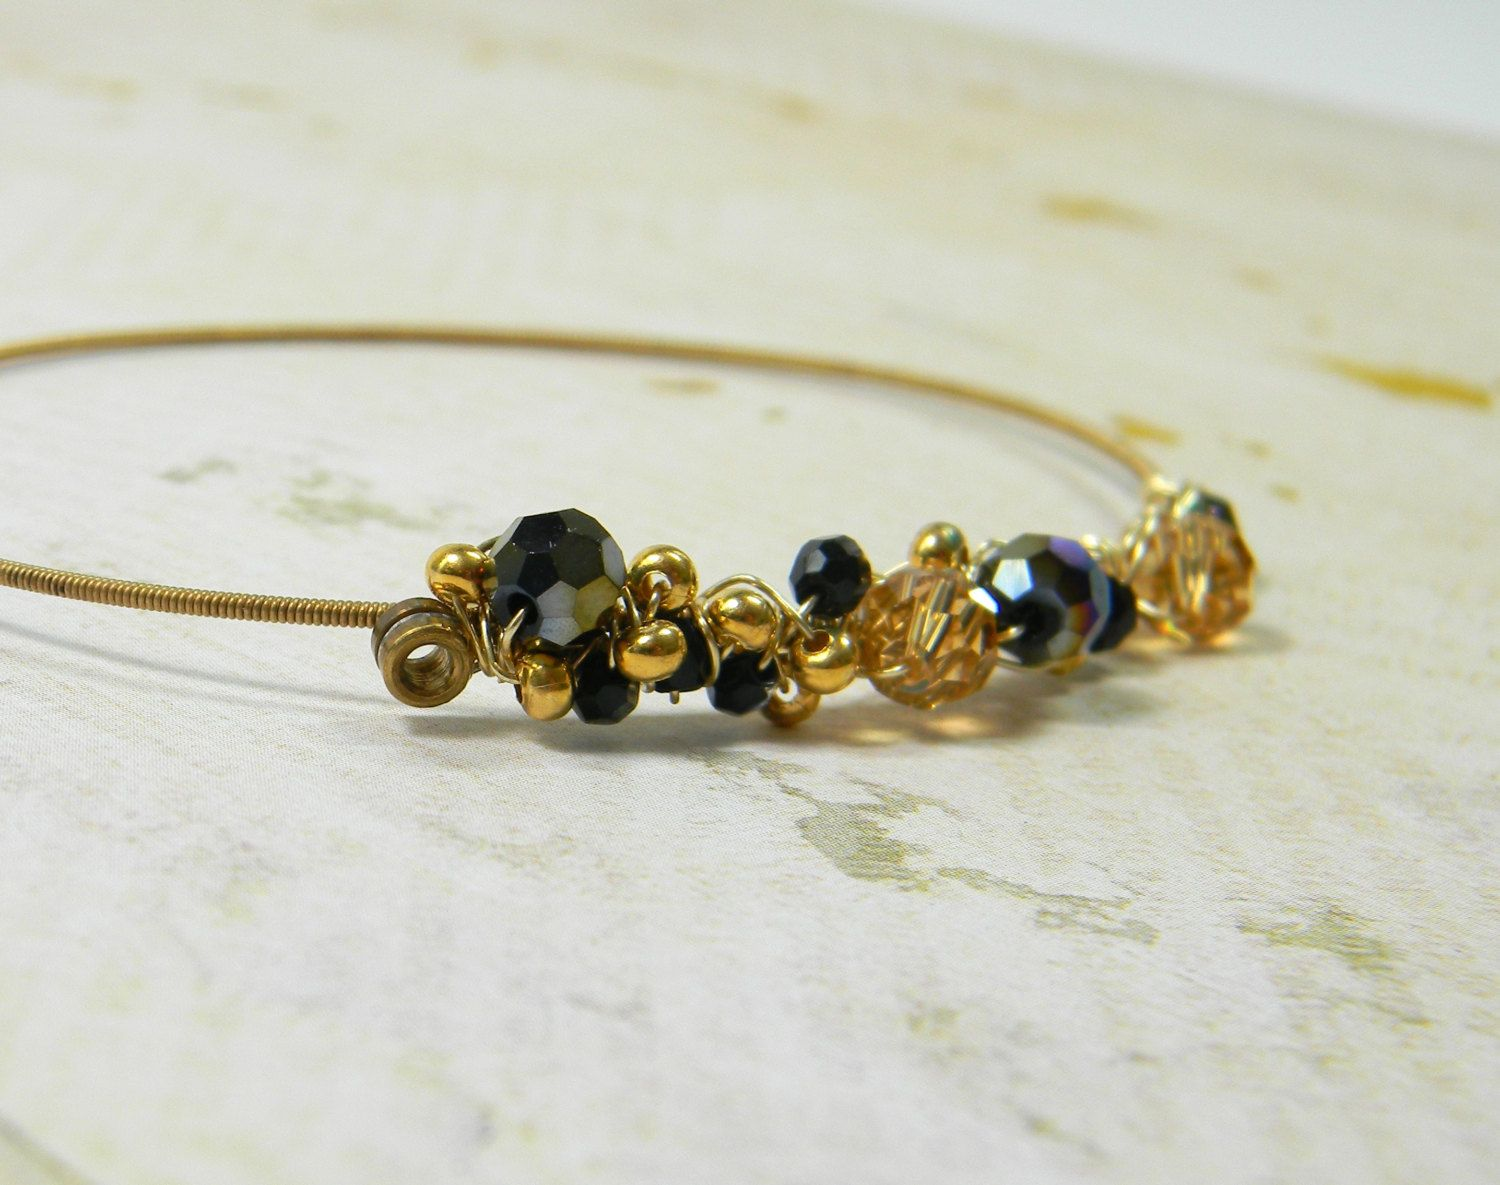 guitar string bangle bracelet, wire wrapped with gold and dark ...